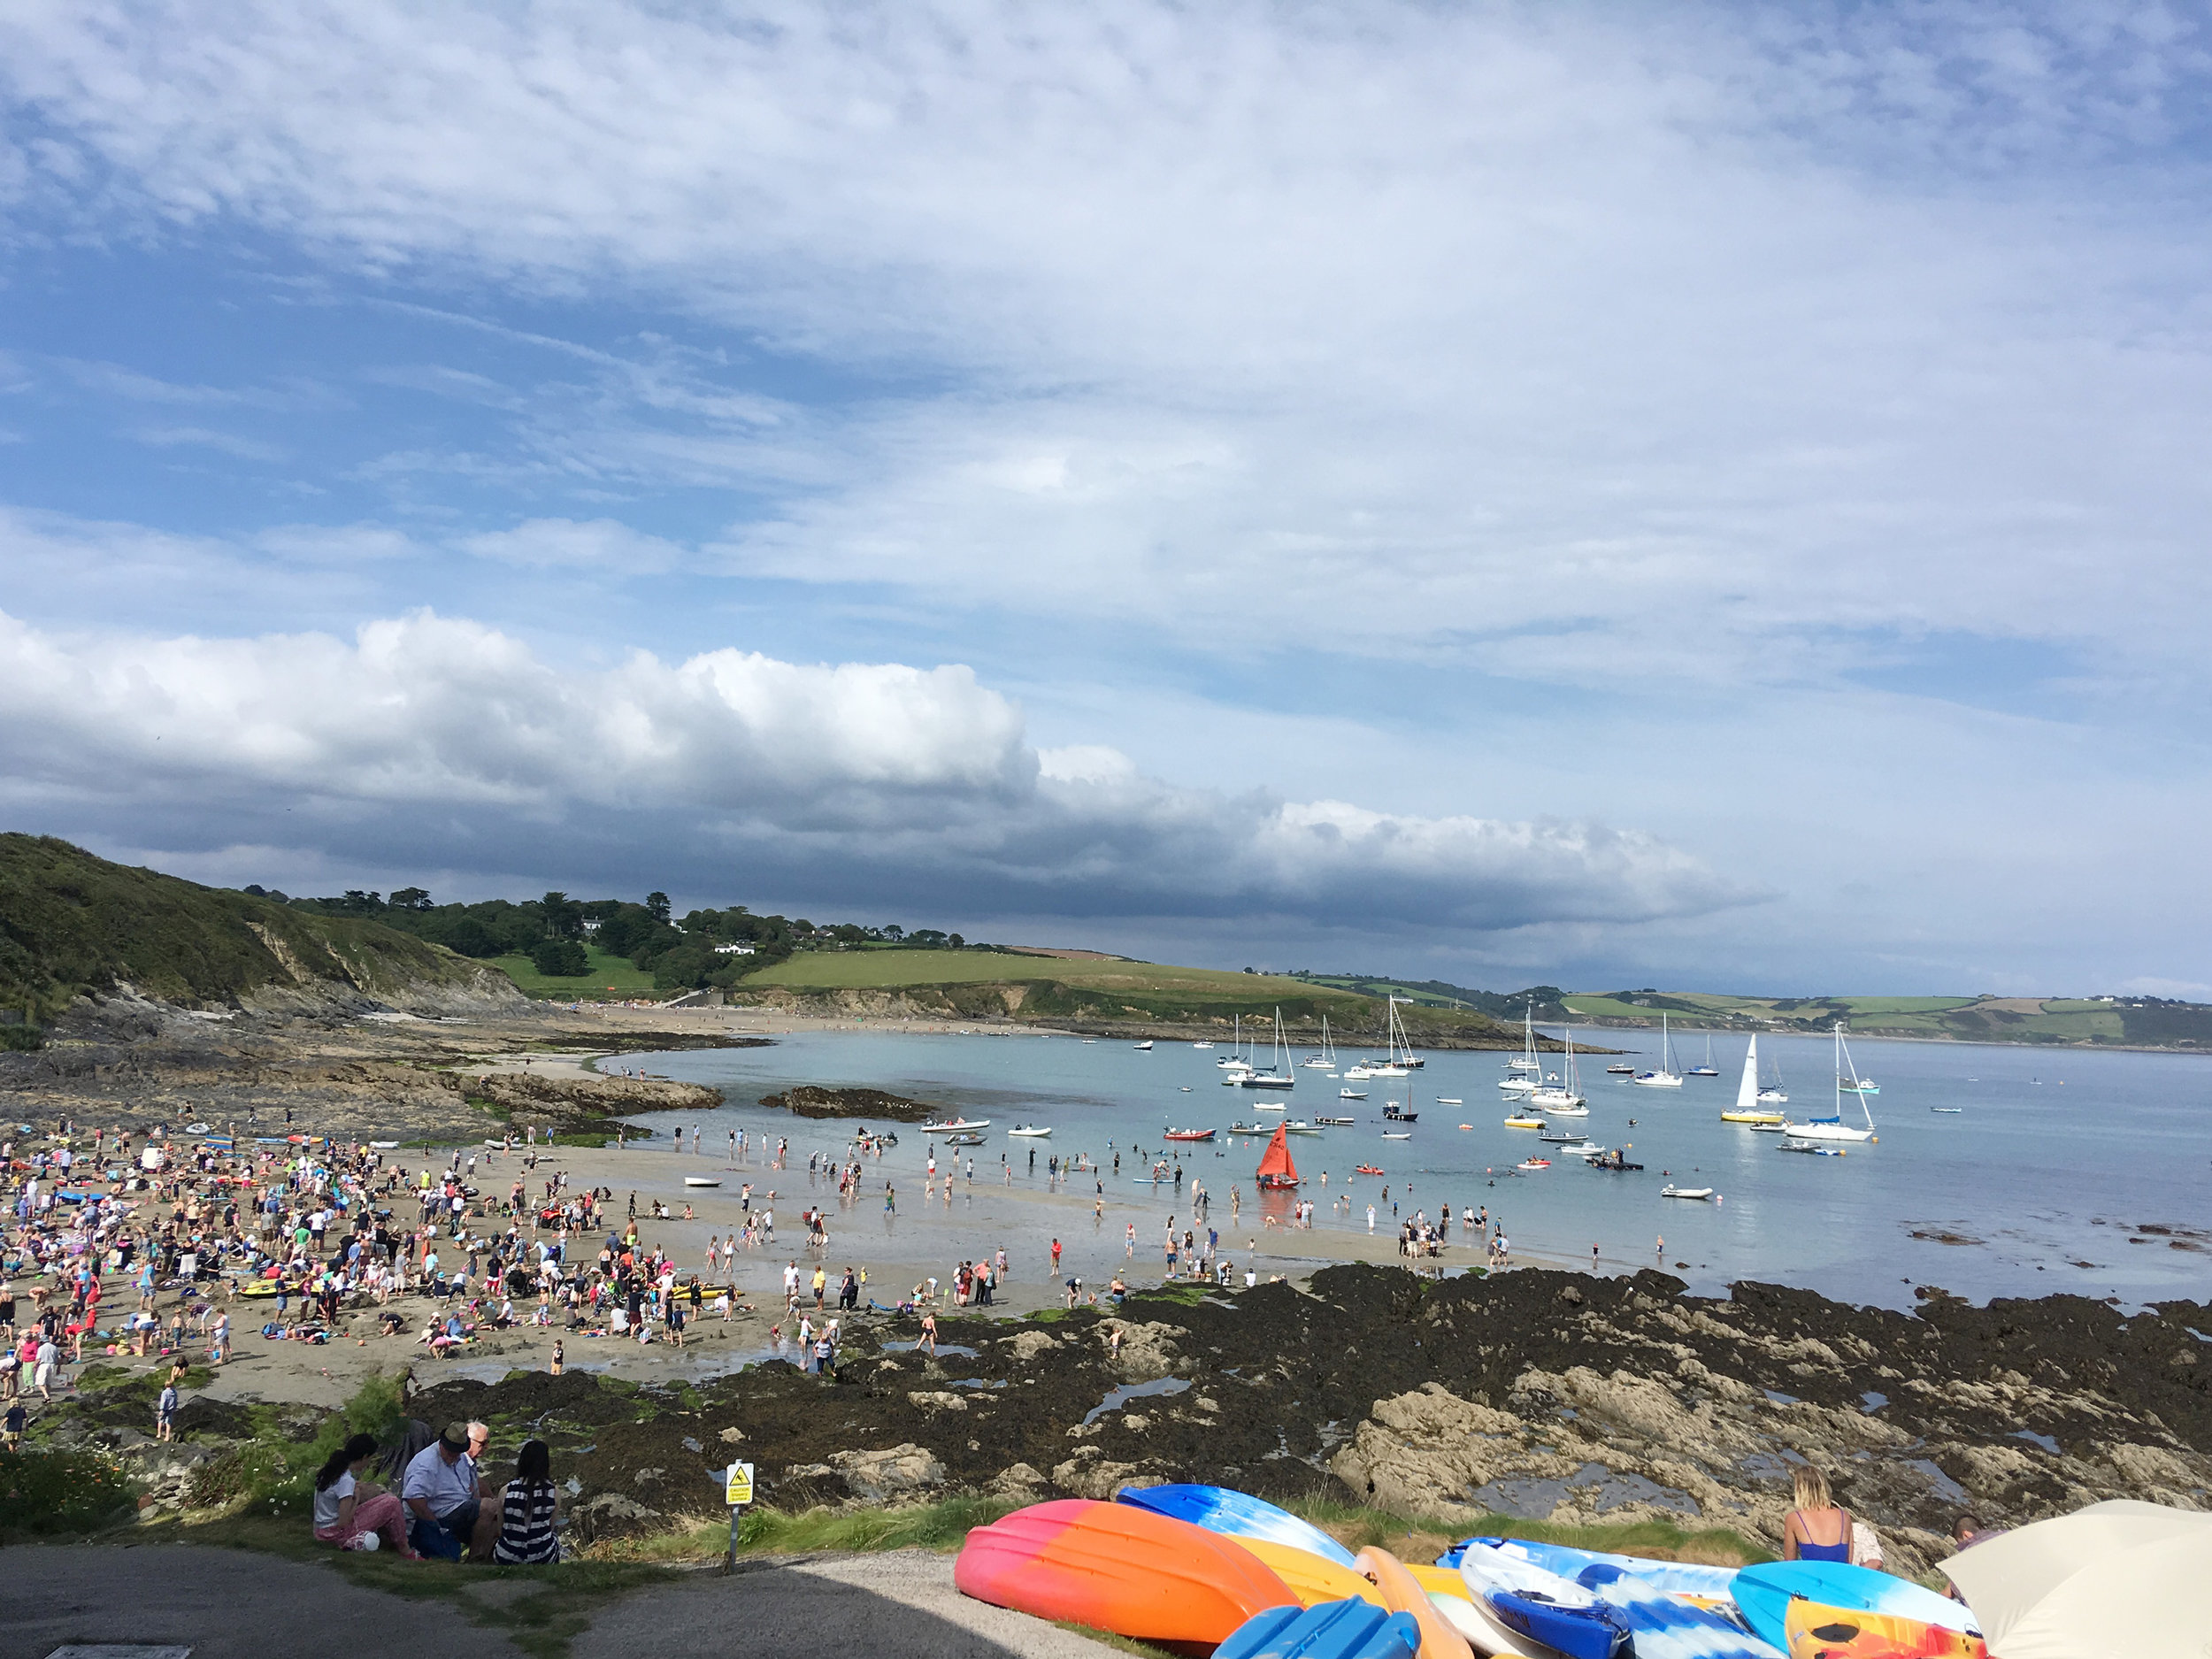 Regatta celebrations on the beach at Portscatho